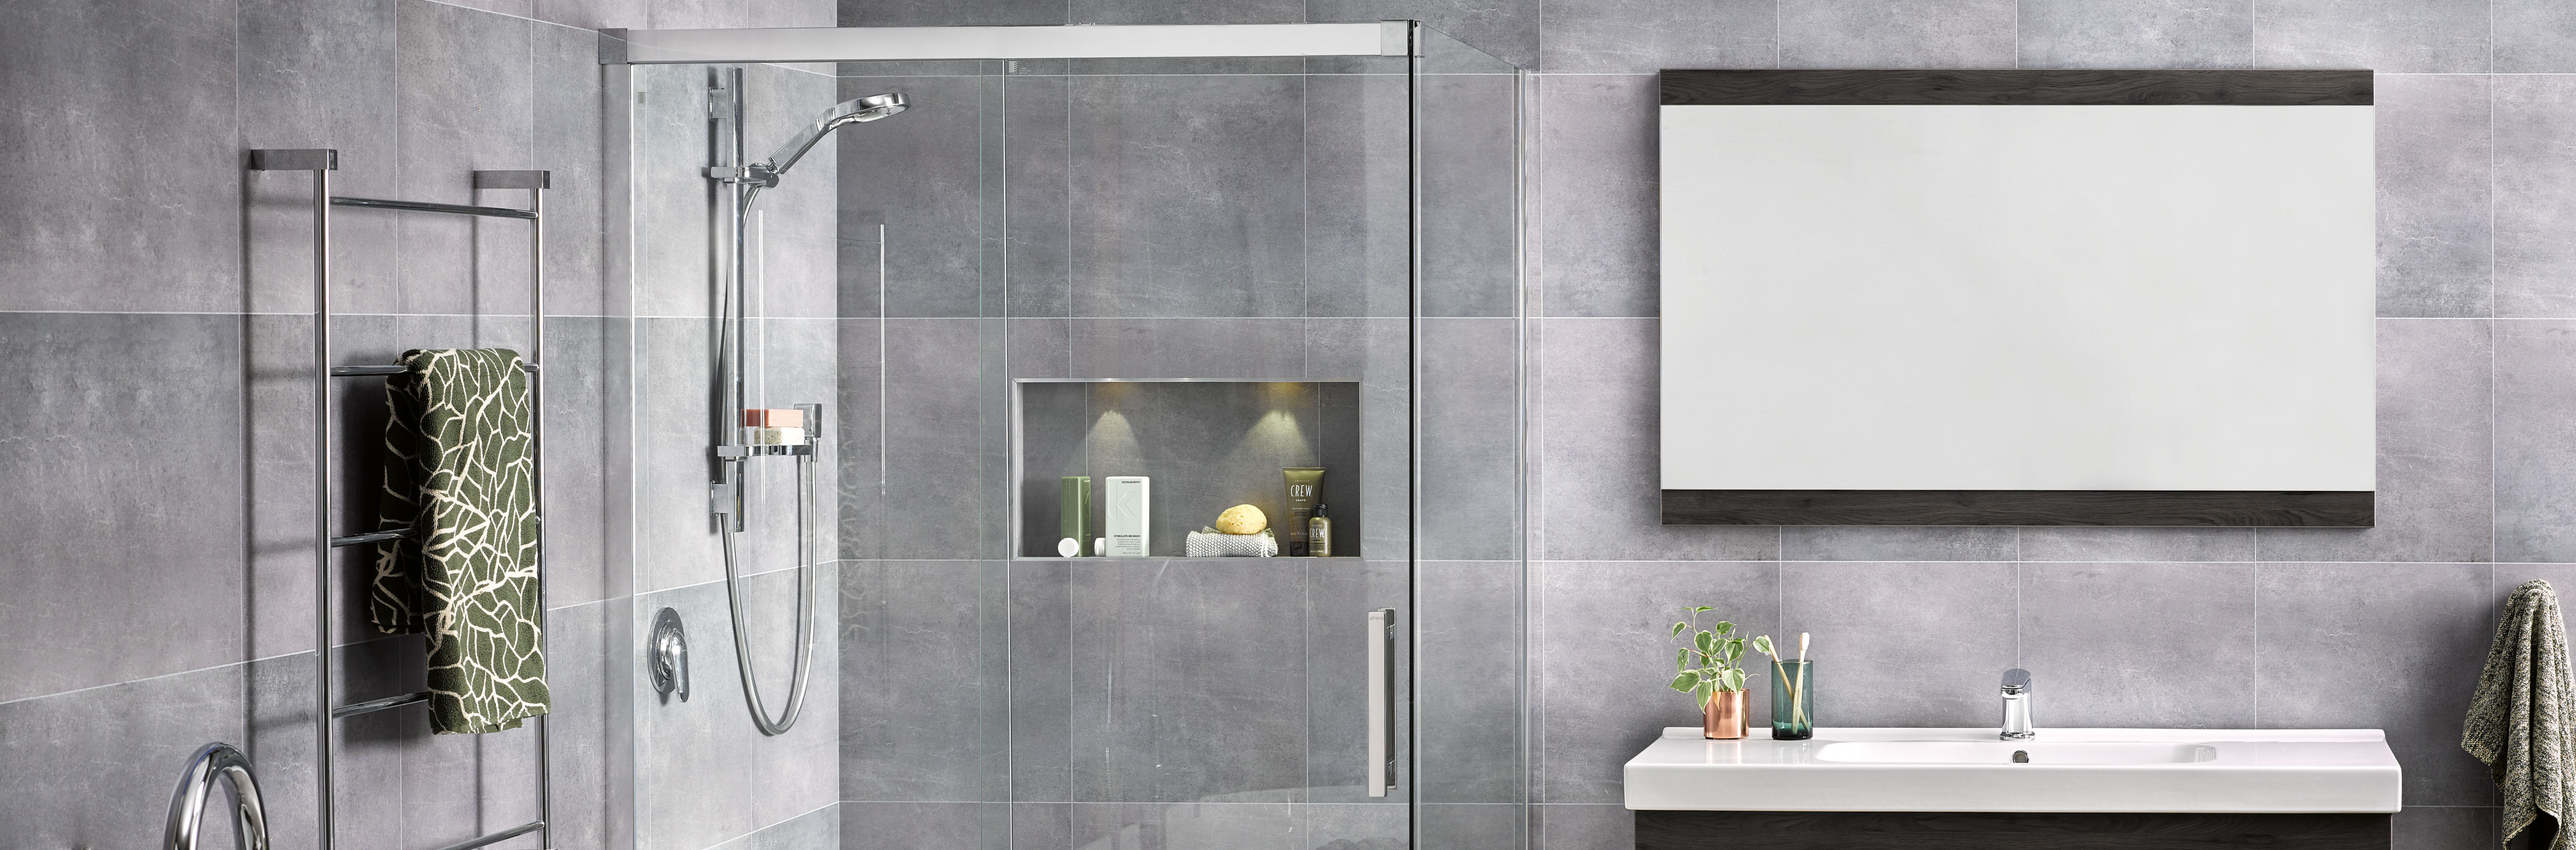 Athena bathrooms bathroomware designed for new zealand homes Bathroom tiles ideas nz